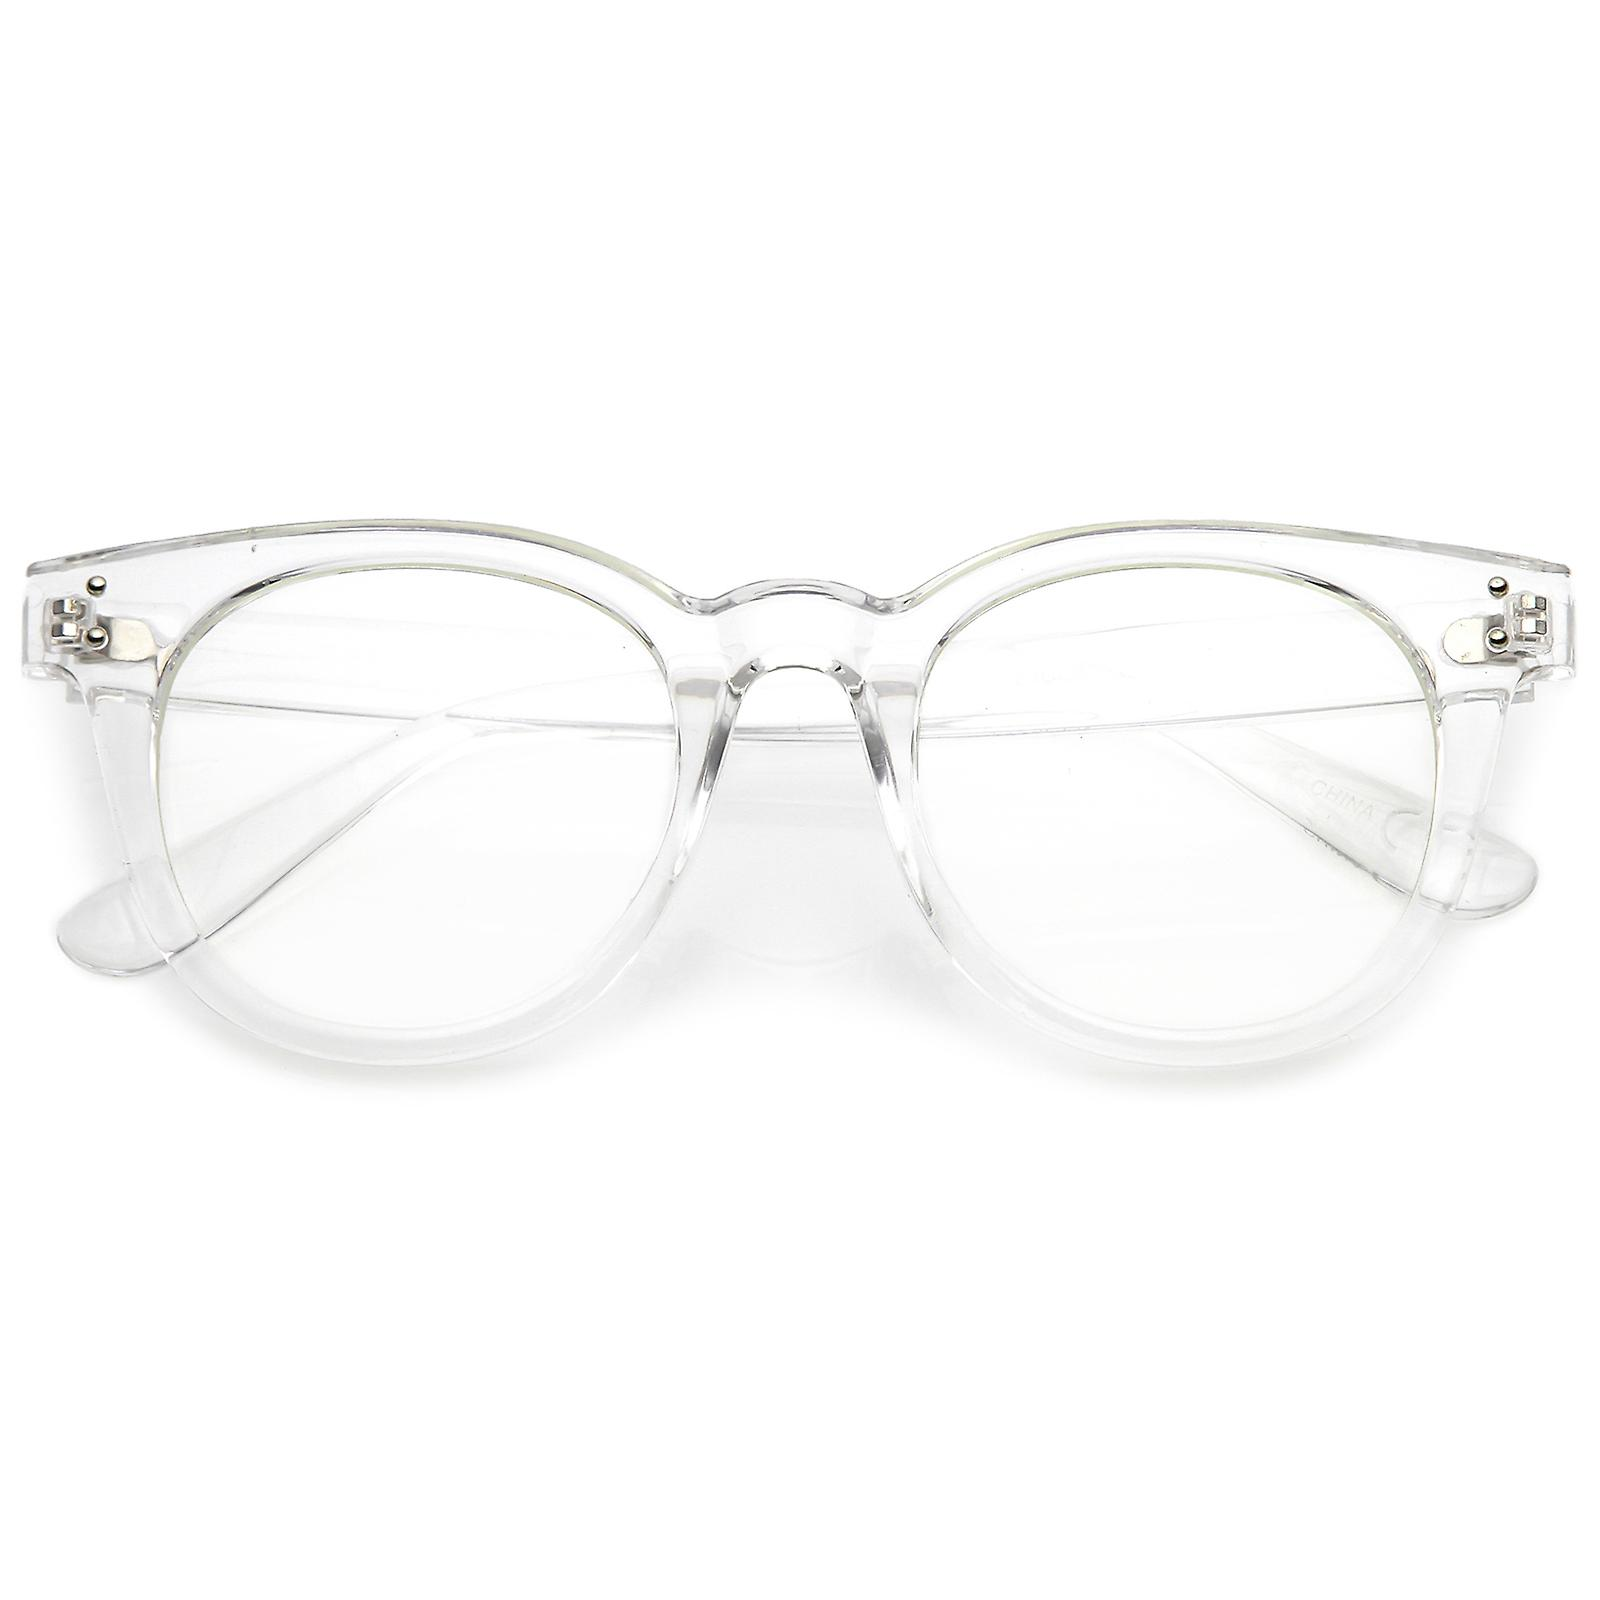 a7839087df8 Classic Horn Rimmed Eyeglasses With Rivet Accent Wide Arms Clear Lens 48mm